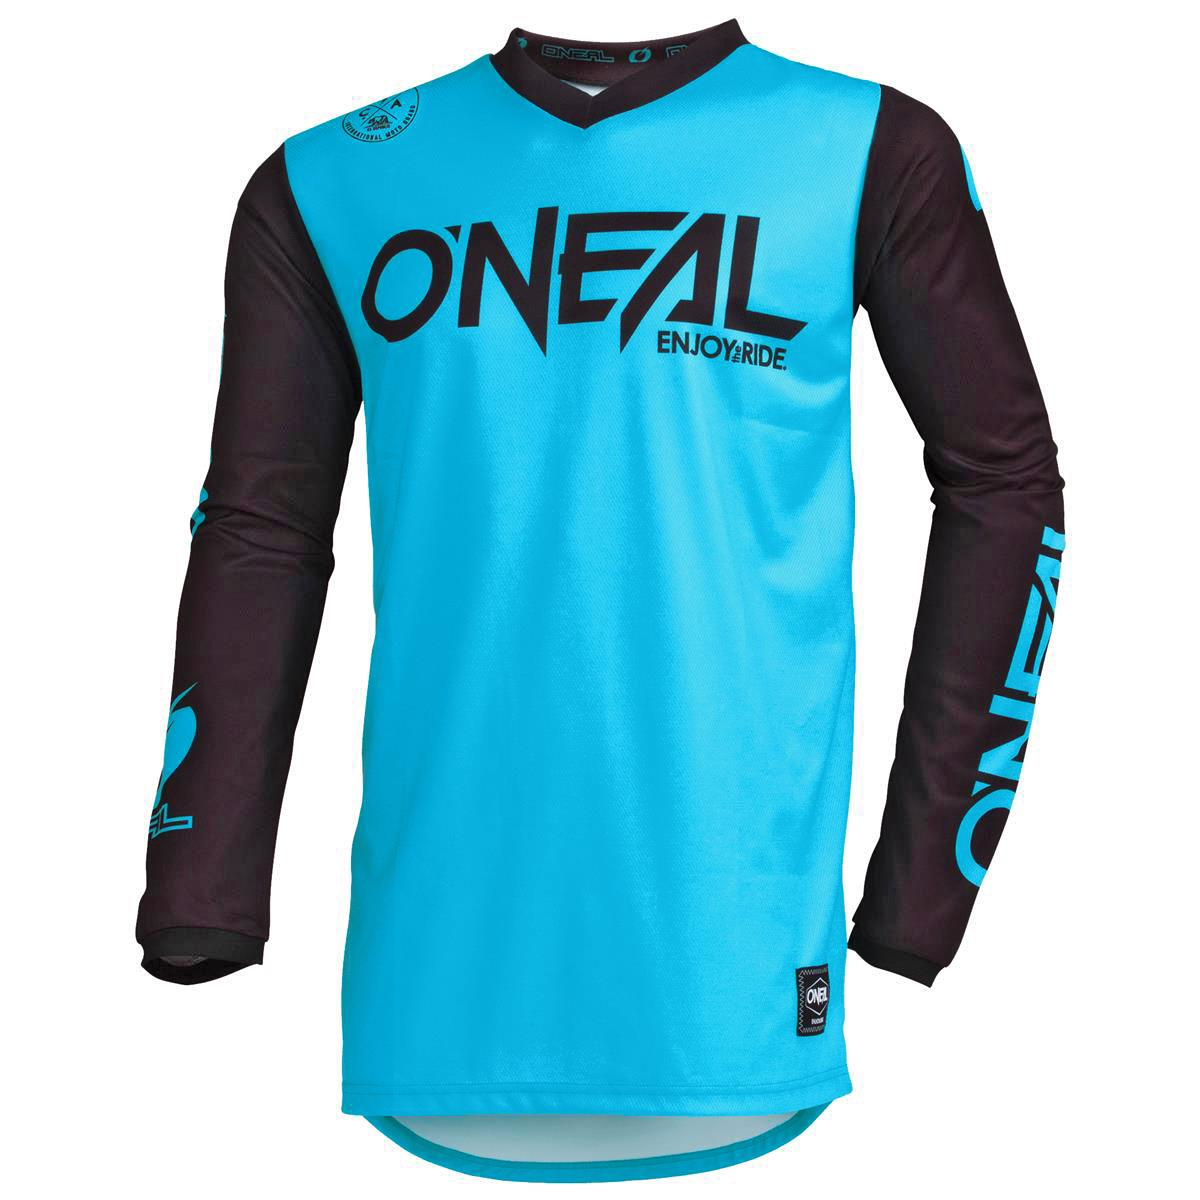 O'Neal Jersey Threat Rider Teal